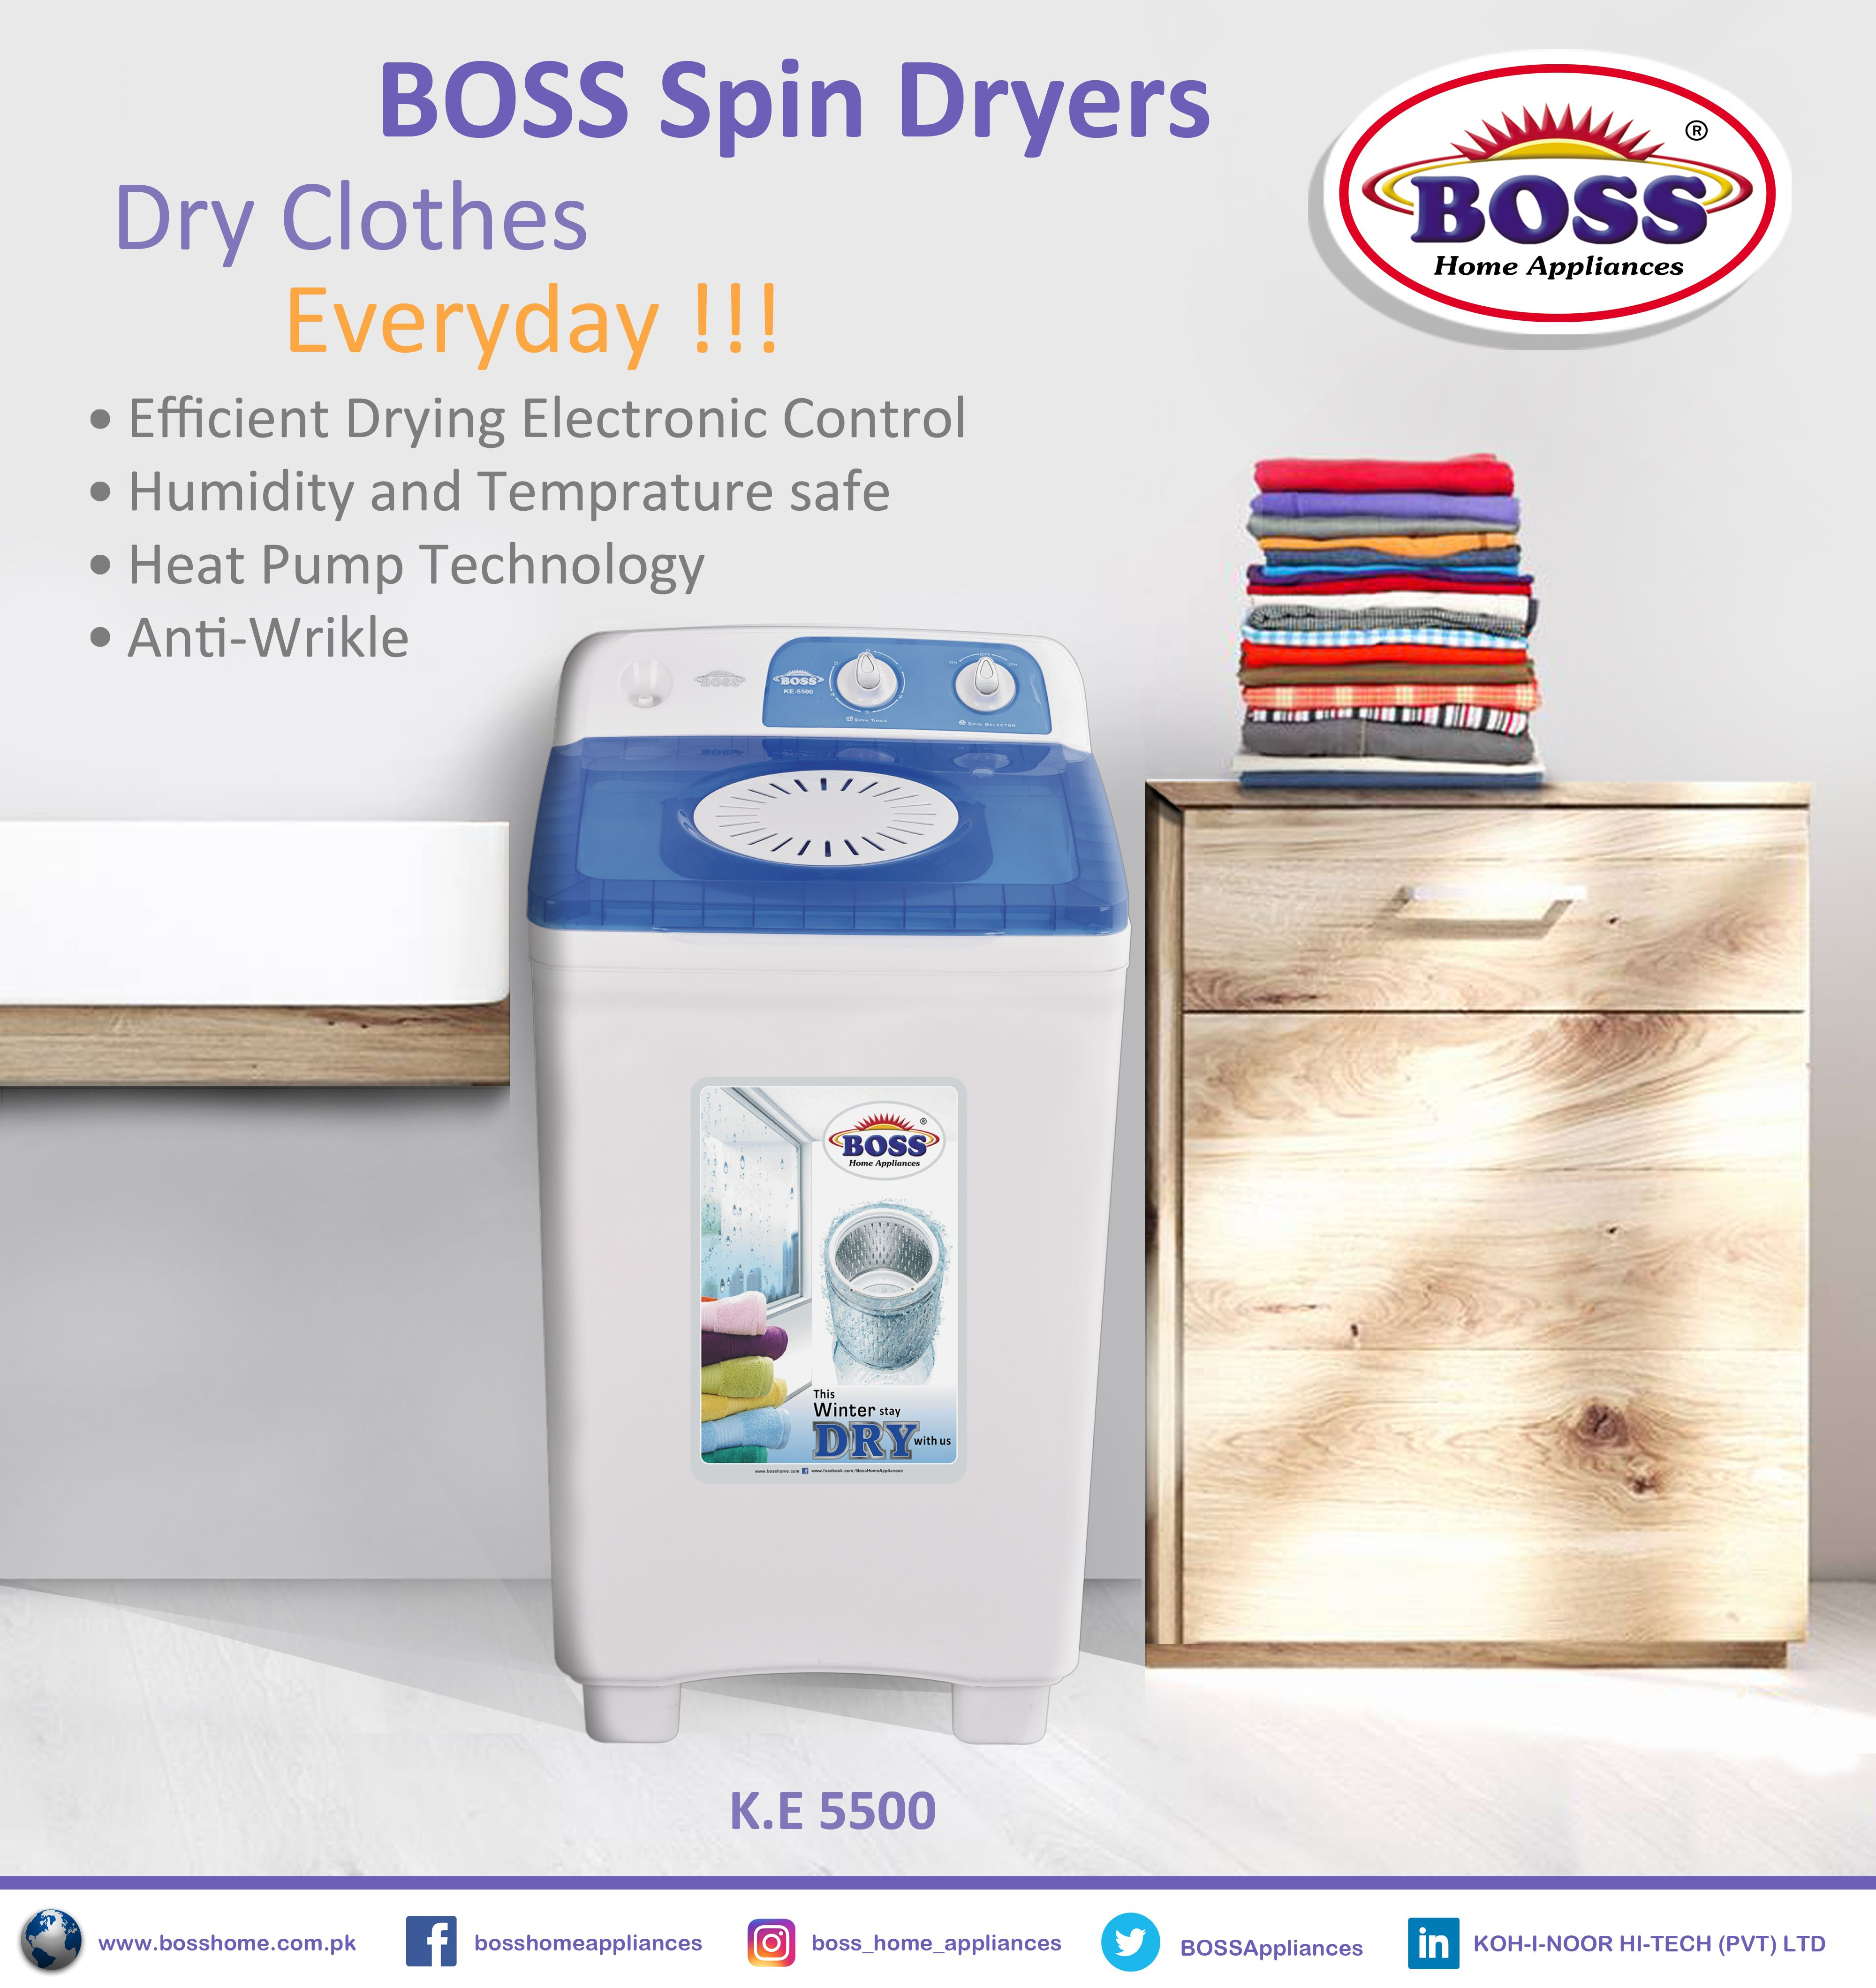 Pin By Boss Home Appliances On Products Spin Dryers Heat Pump Humidity